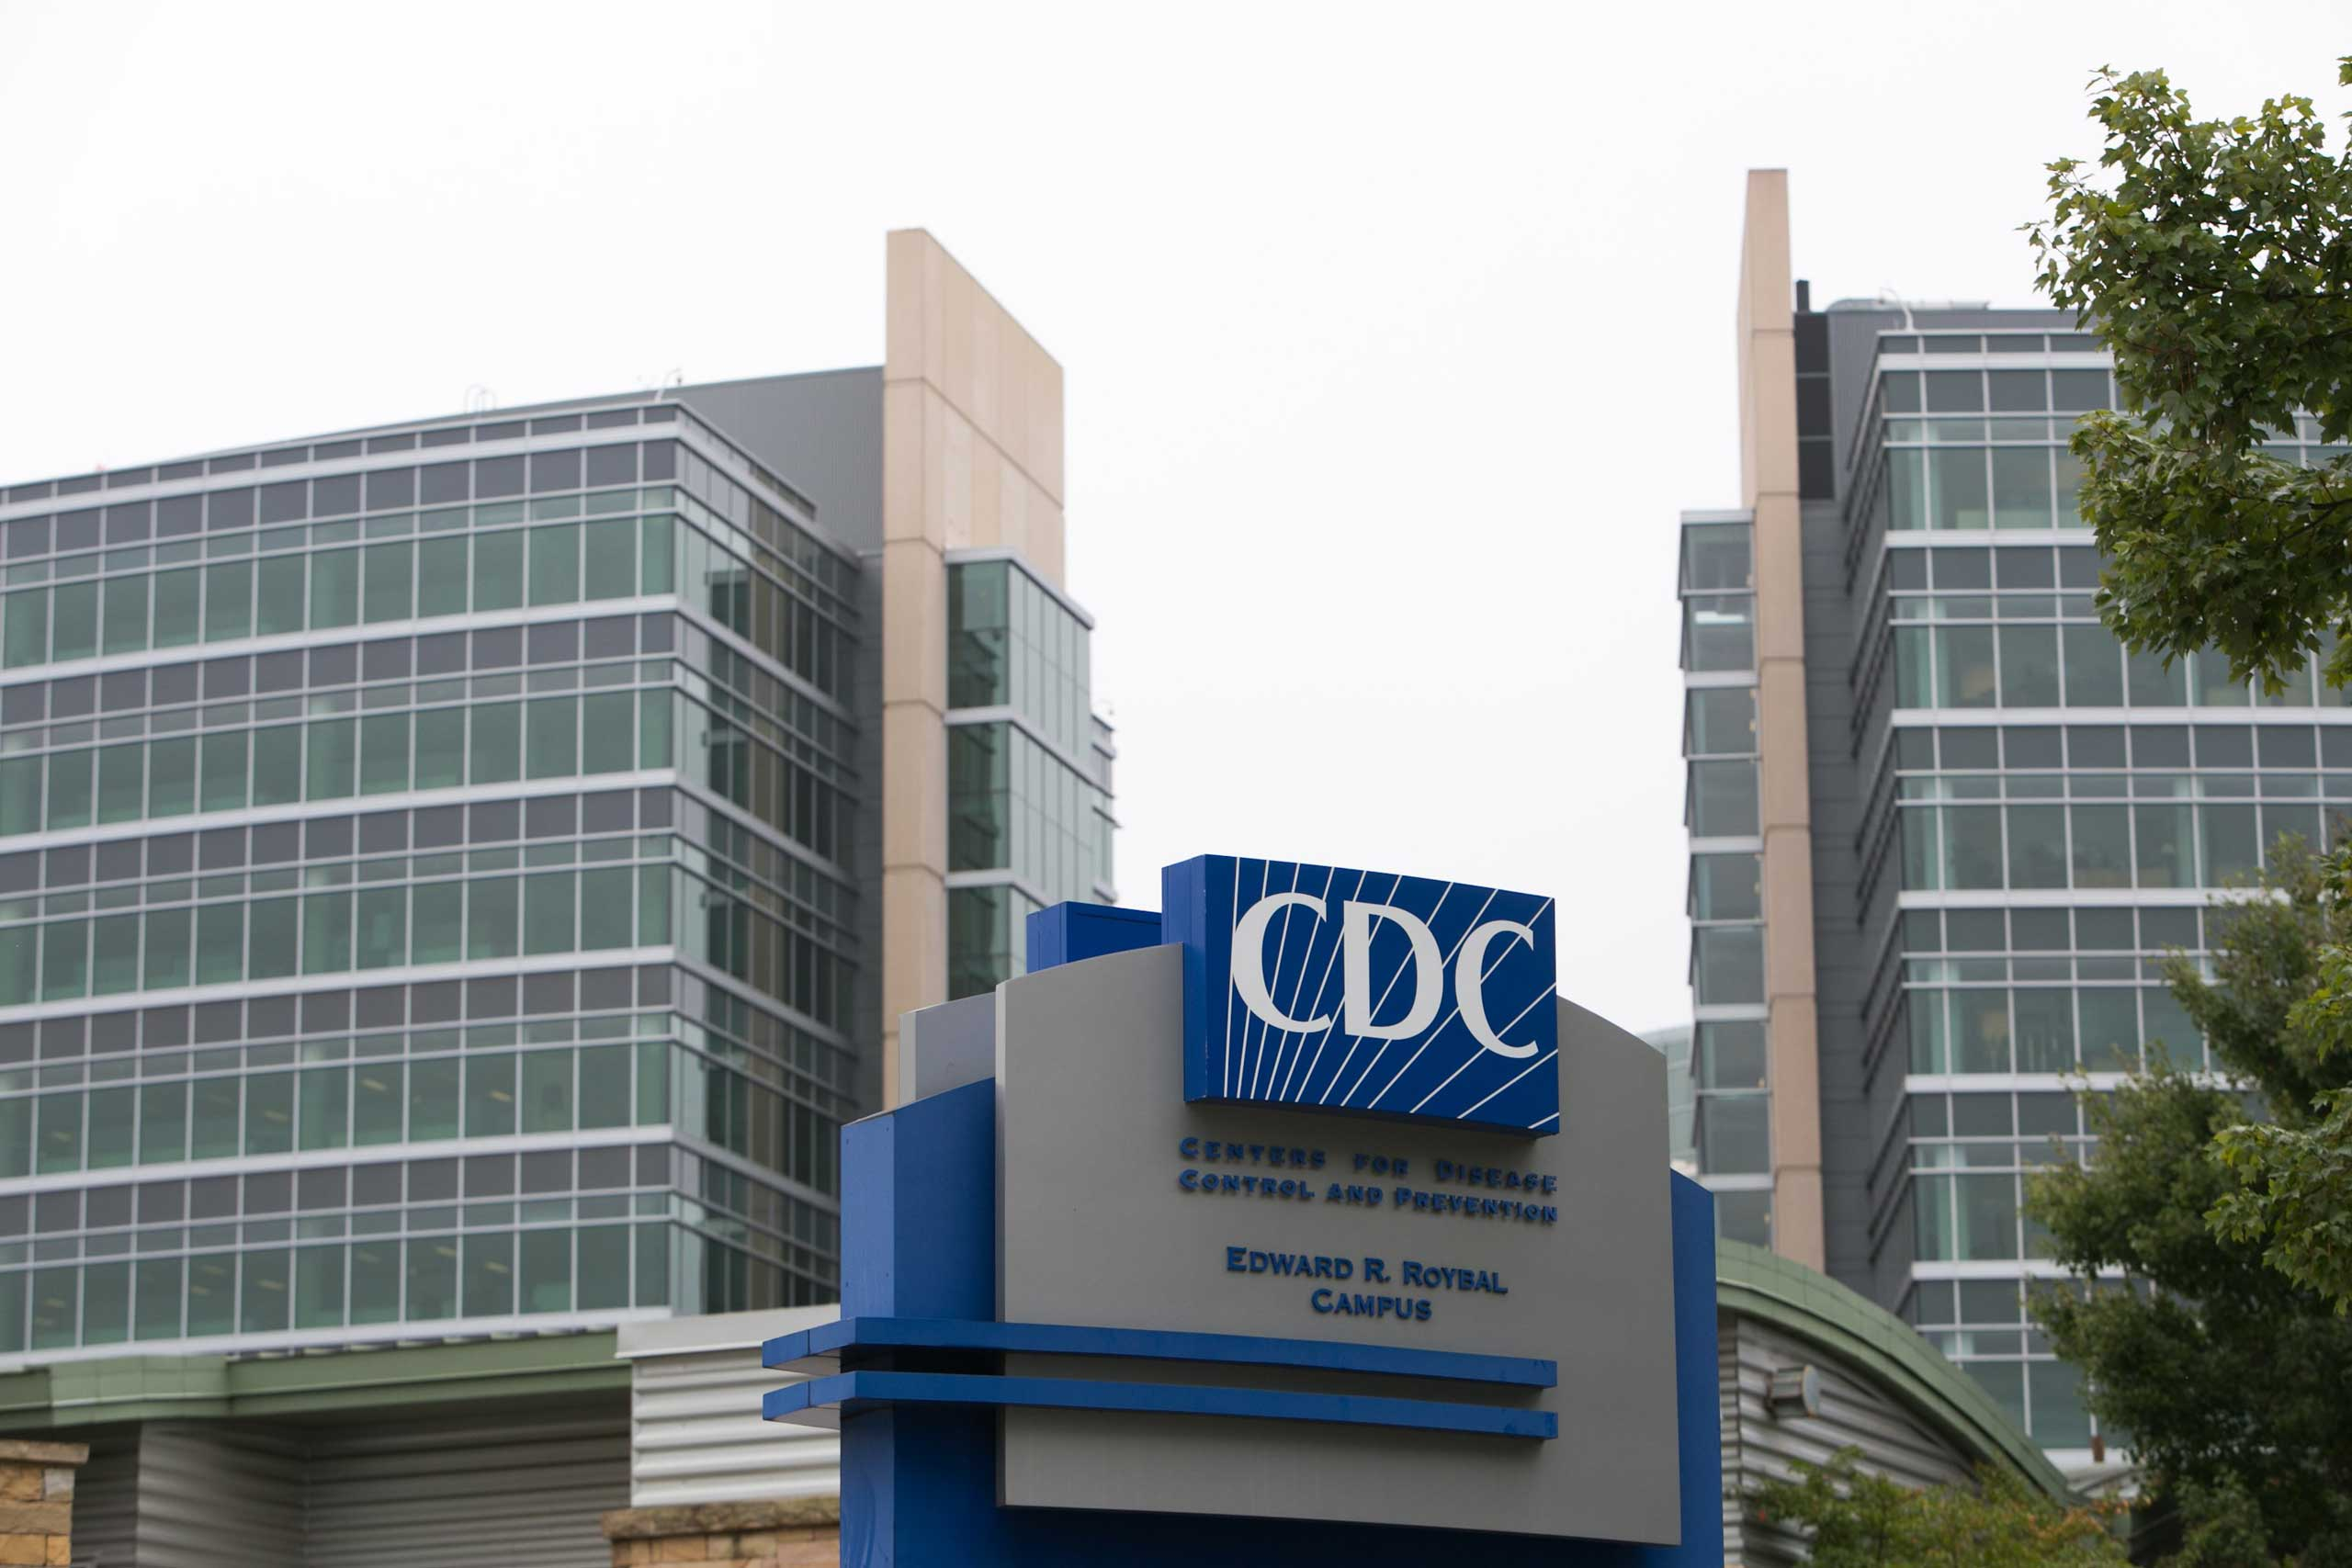 Exterior of the Center for Disease Control (CDC) headquarters in Atlanta on Oct. 13, 2014.